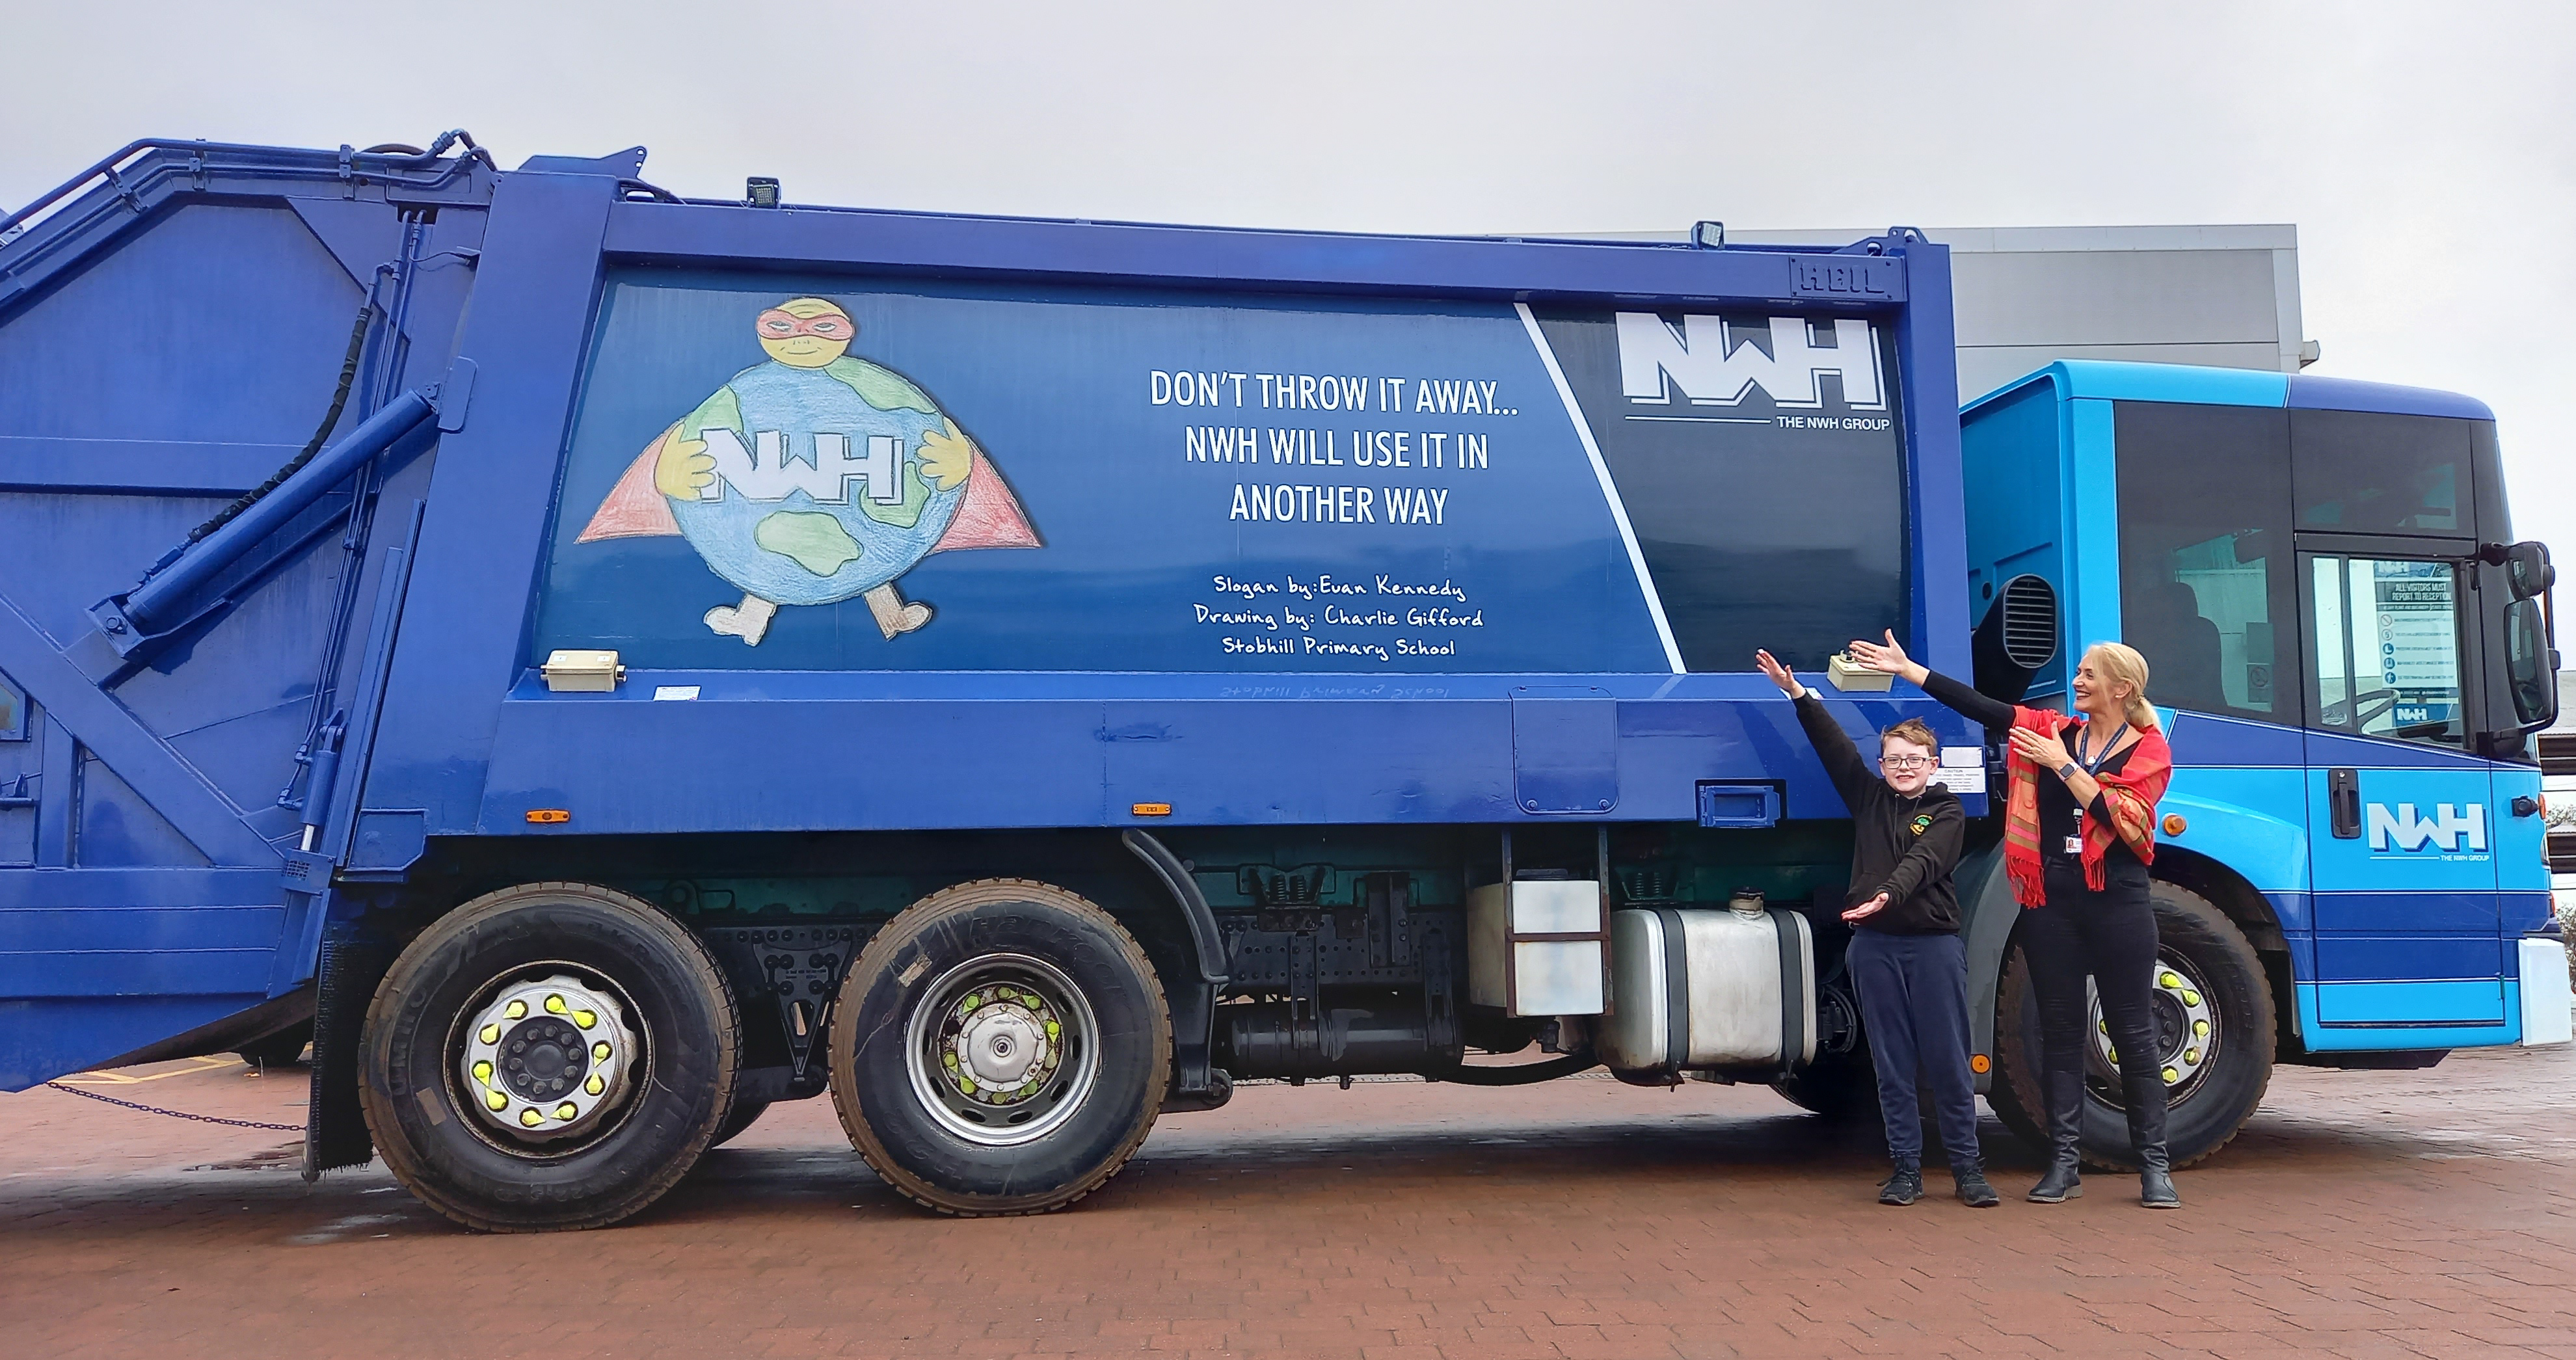 The NWH Group partners with schools to combat climate change through recycling education